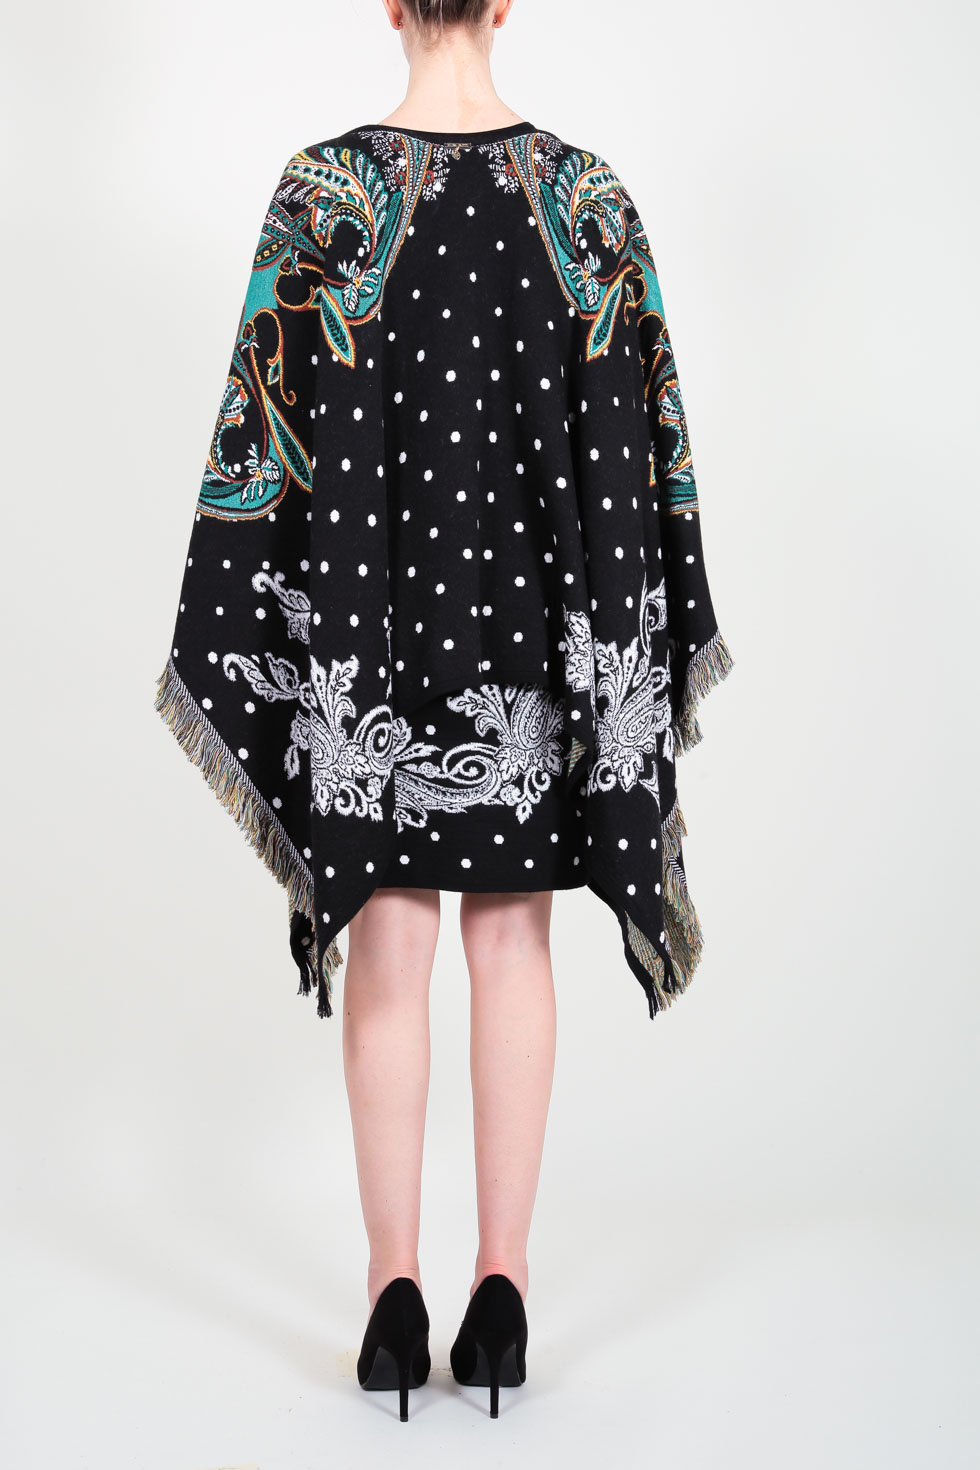 ELISA FANTI F/W 21/22 SERIE Gritty Chic PONCHO IN JAQUARD CON STAMPA CASHMERE